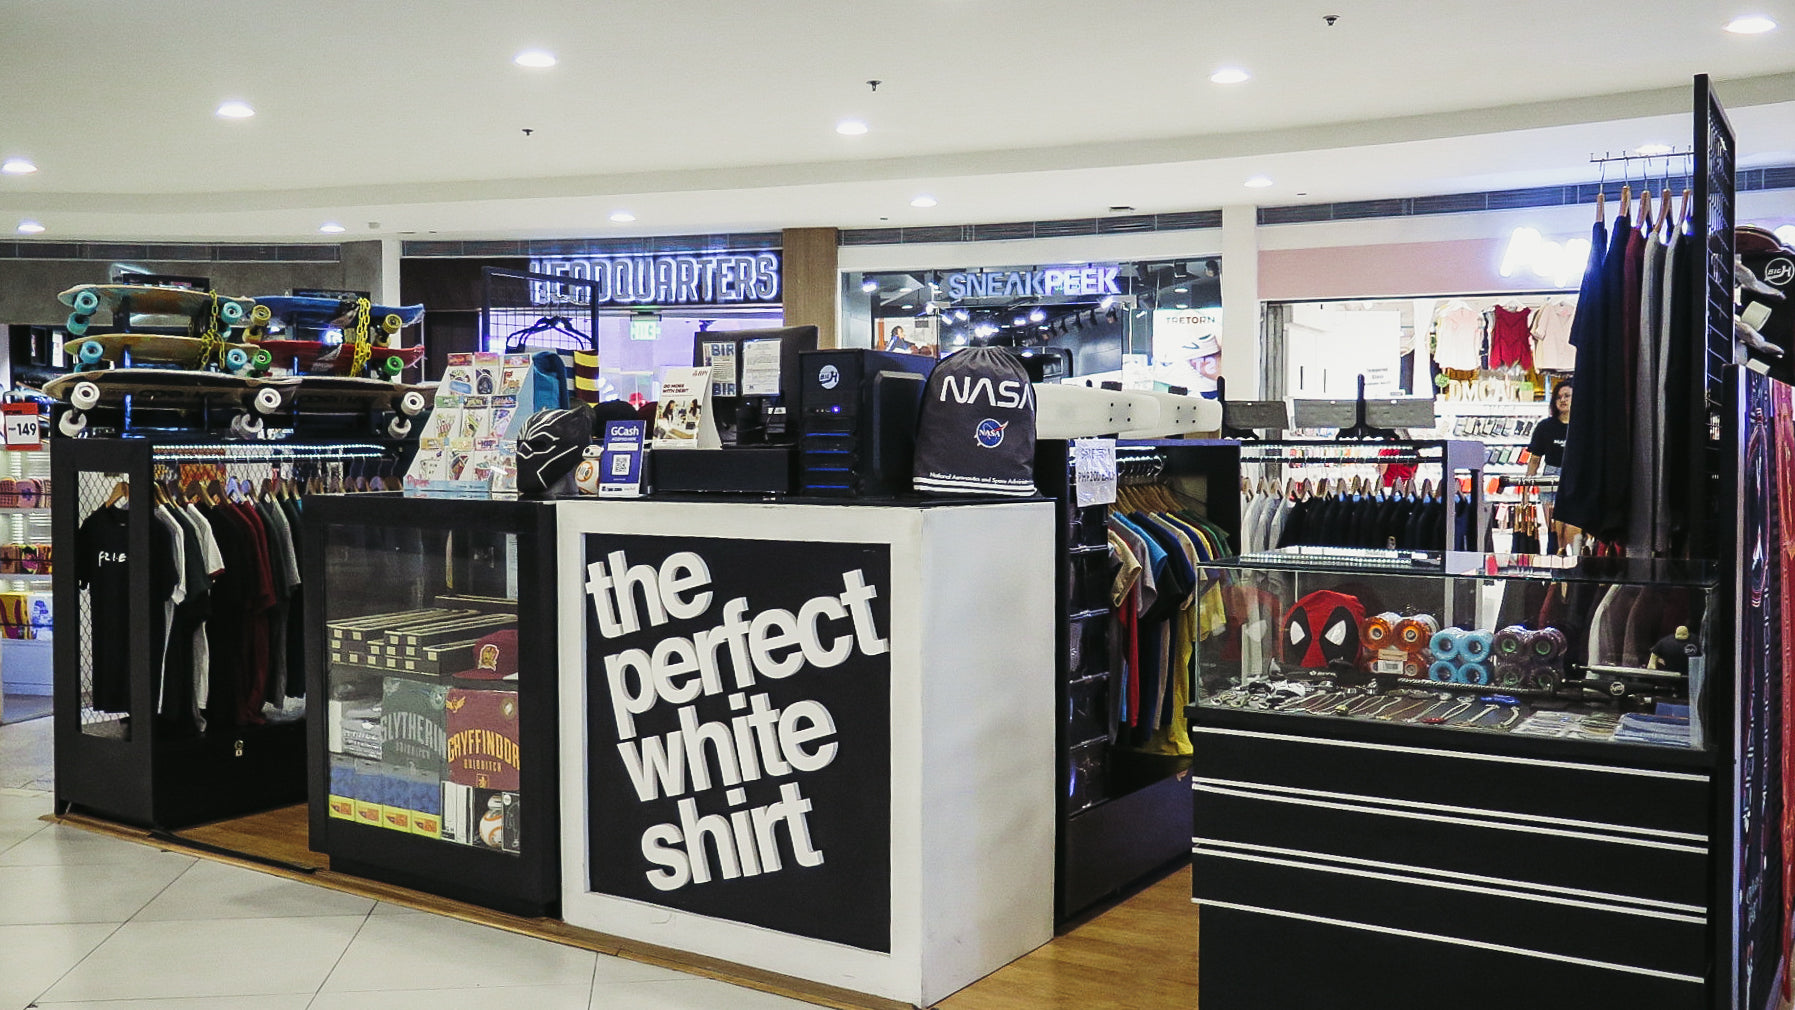 The Perfect White Shirt Trinoma